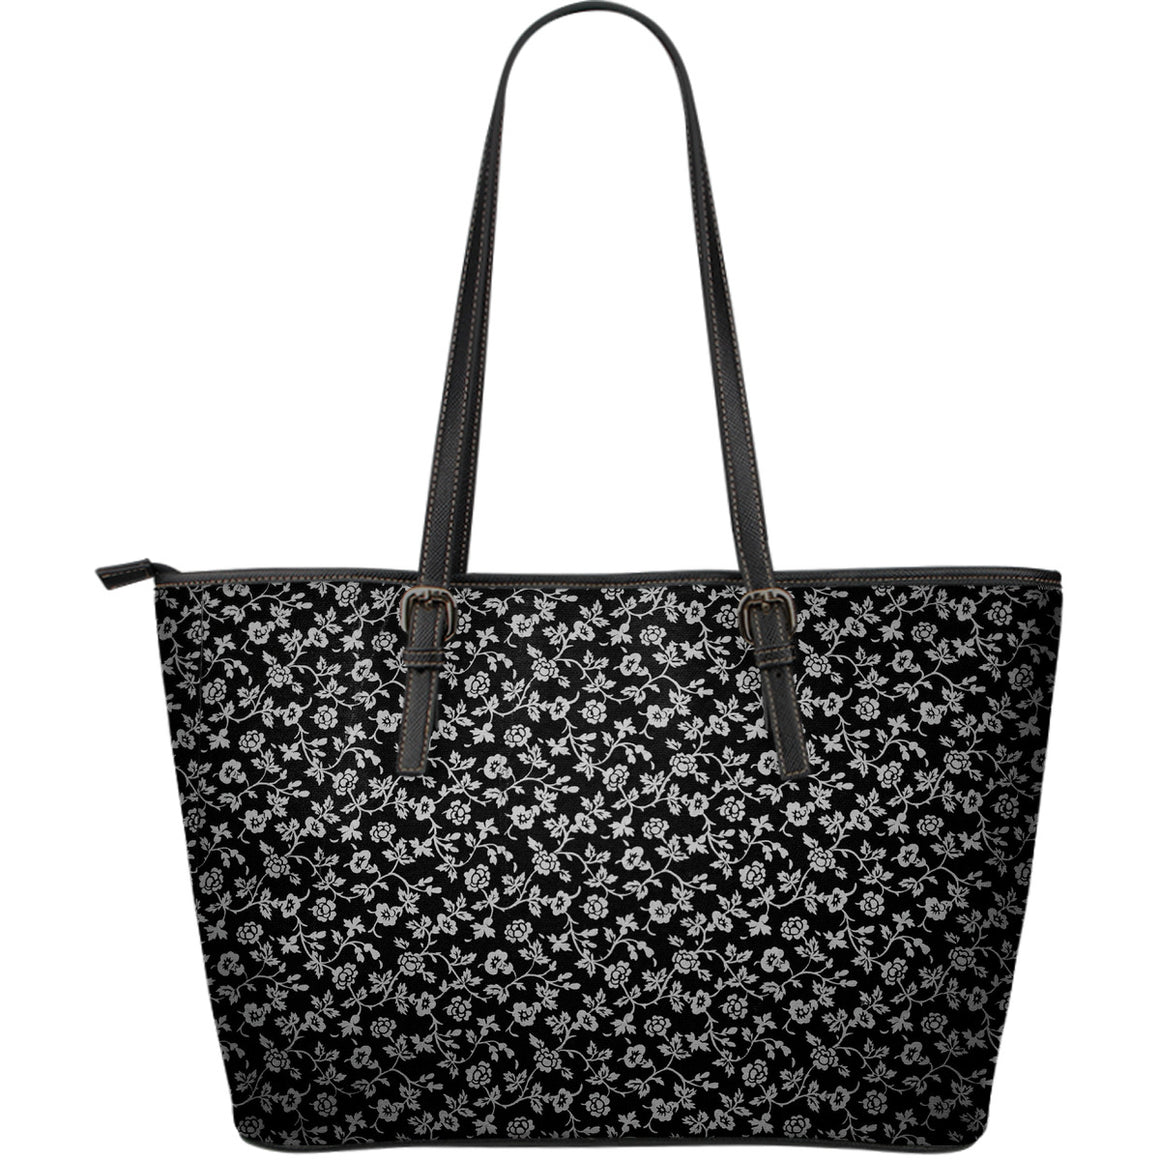 Floral Large Leather Tote